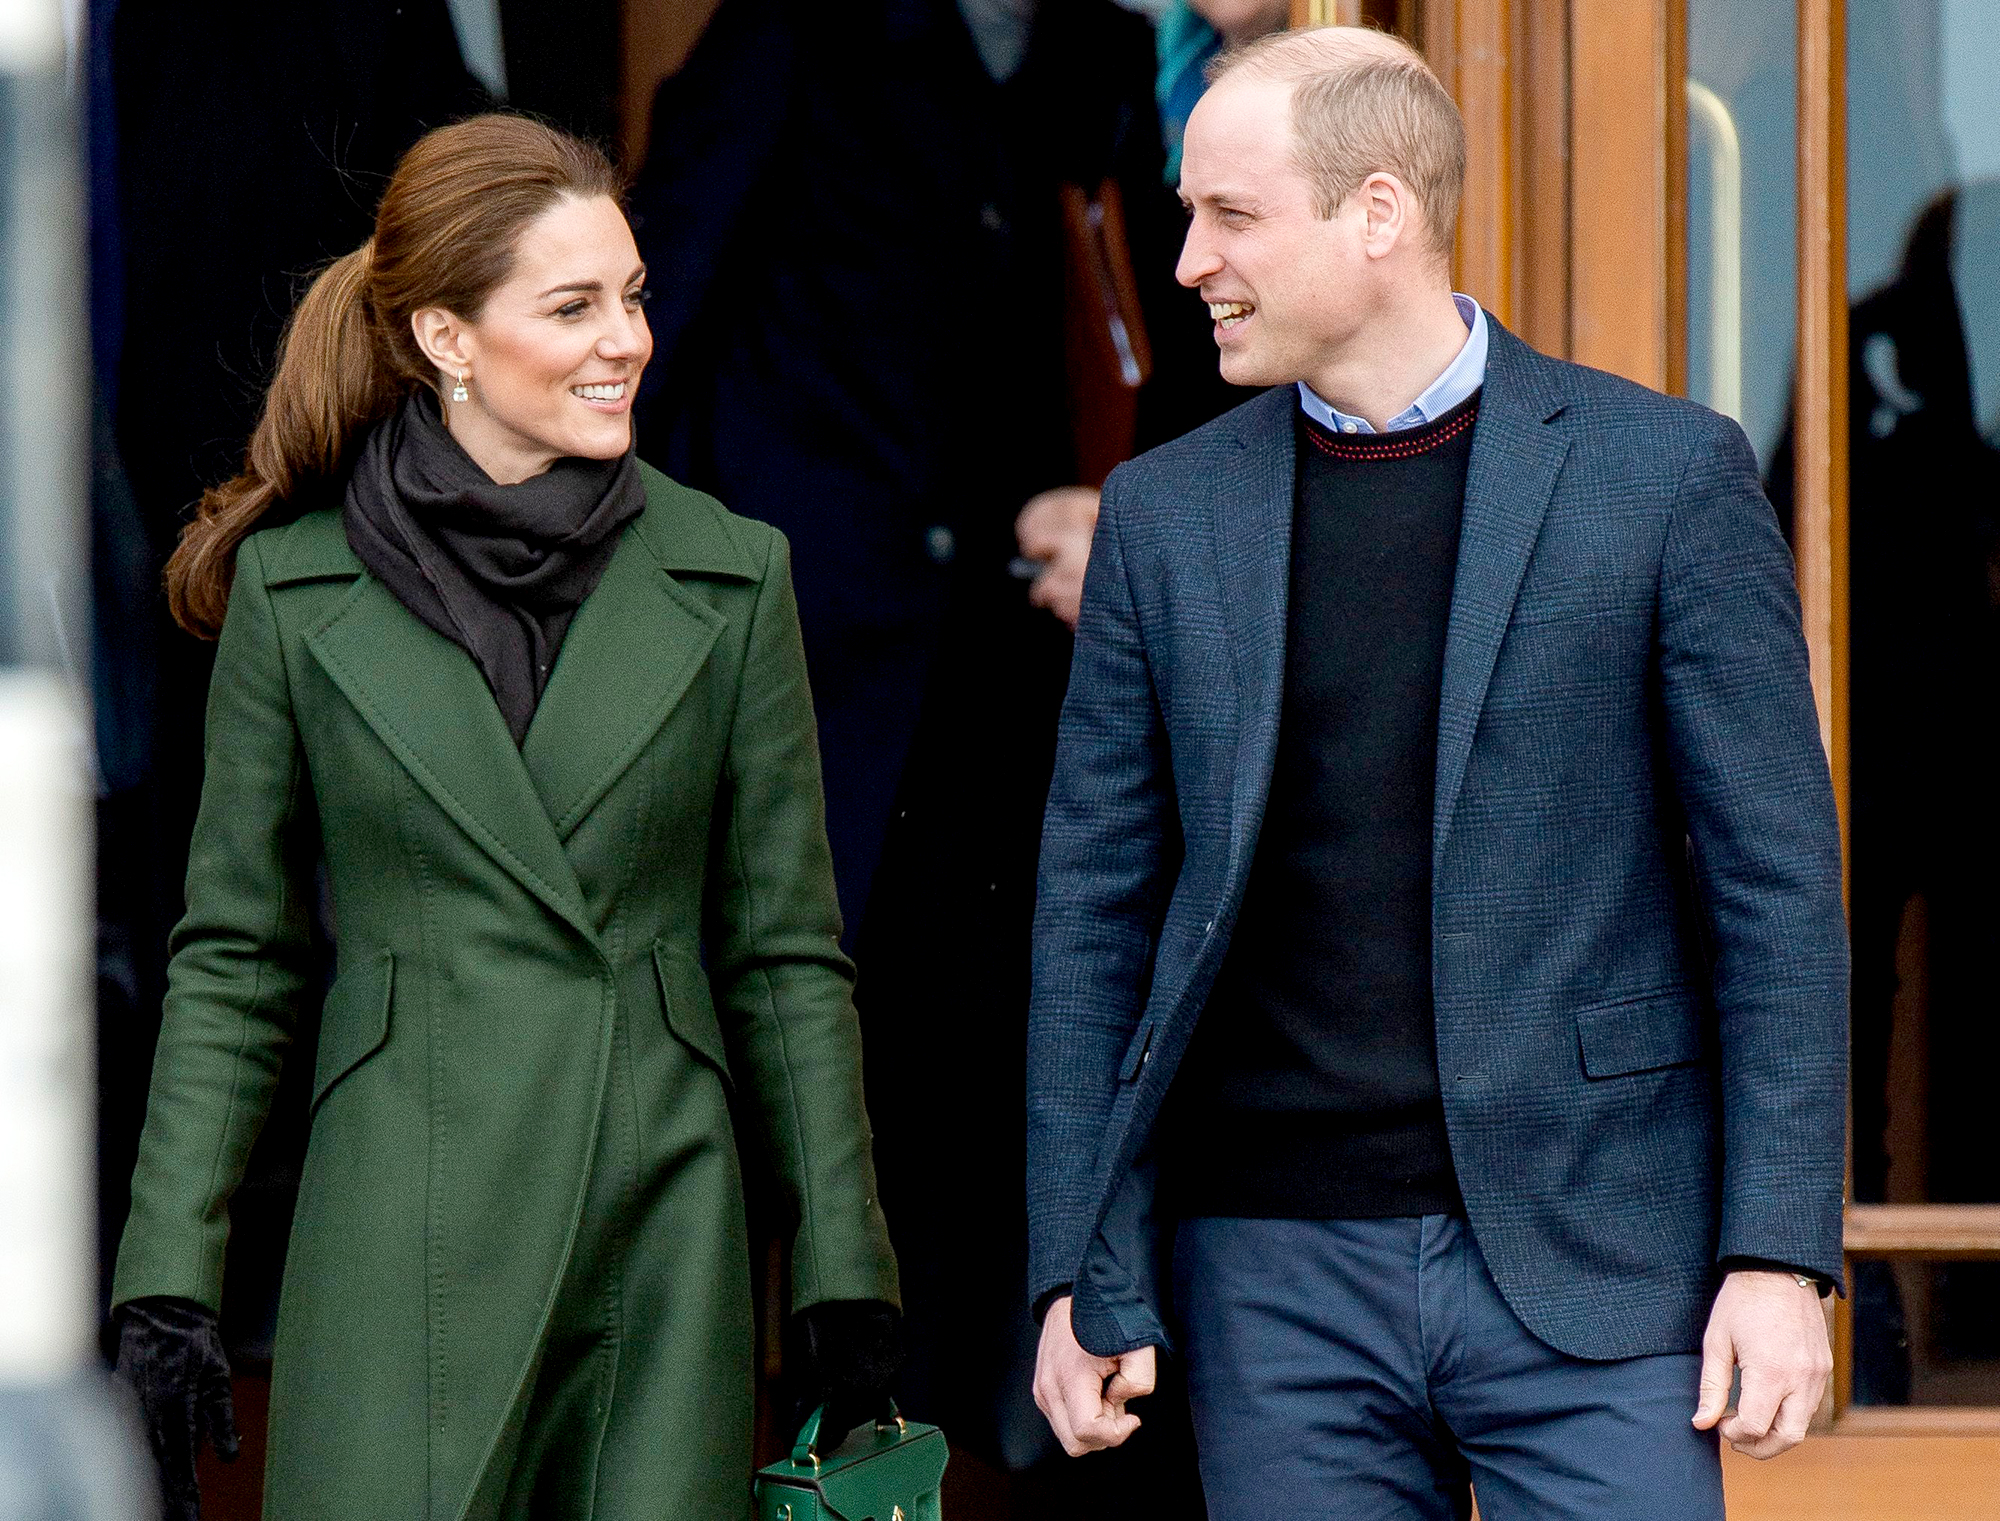 Prince-William-and-Duchess-Kate-Relax-During-School-Holidays